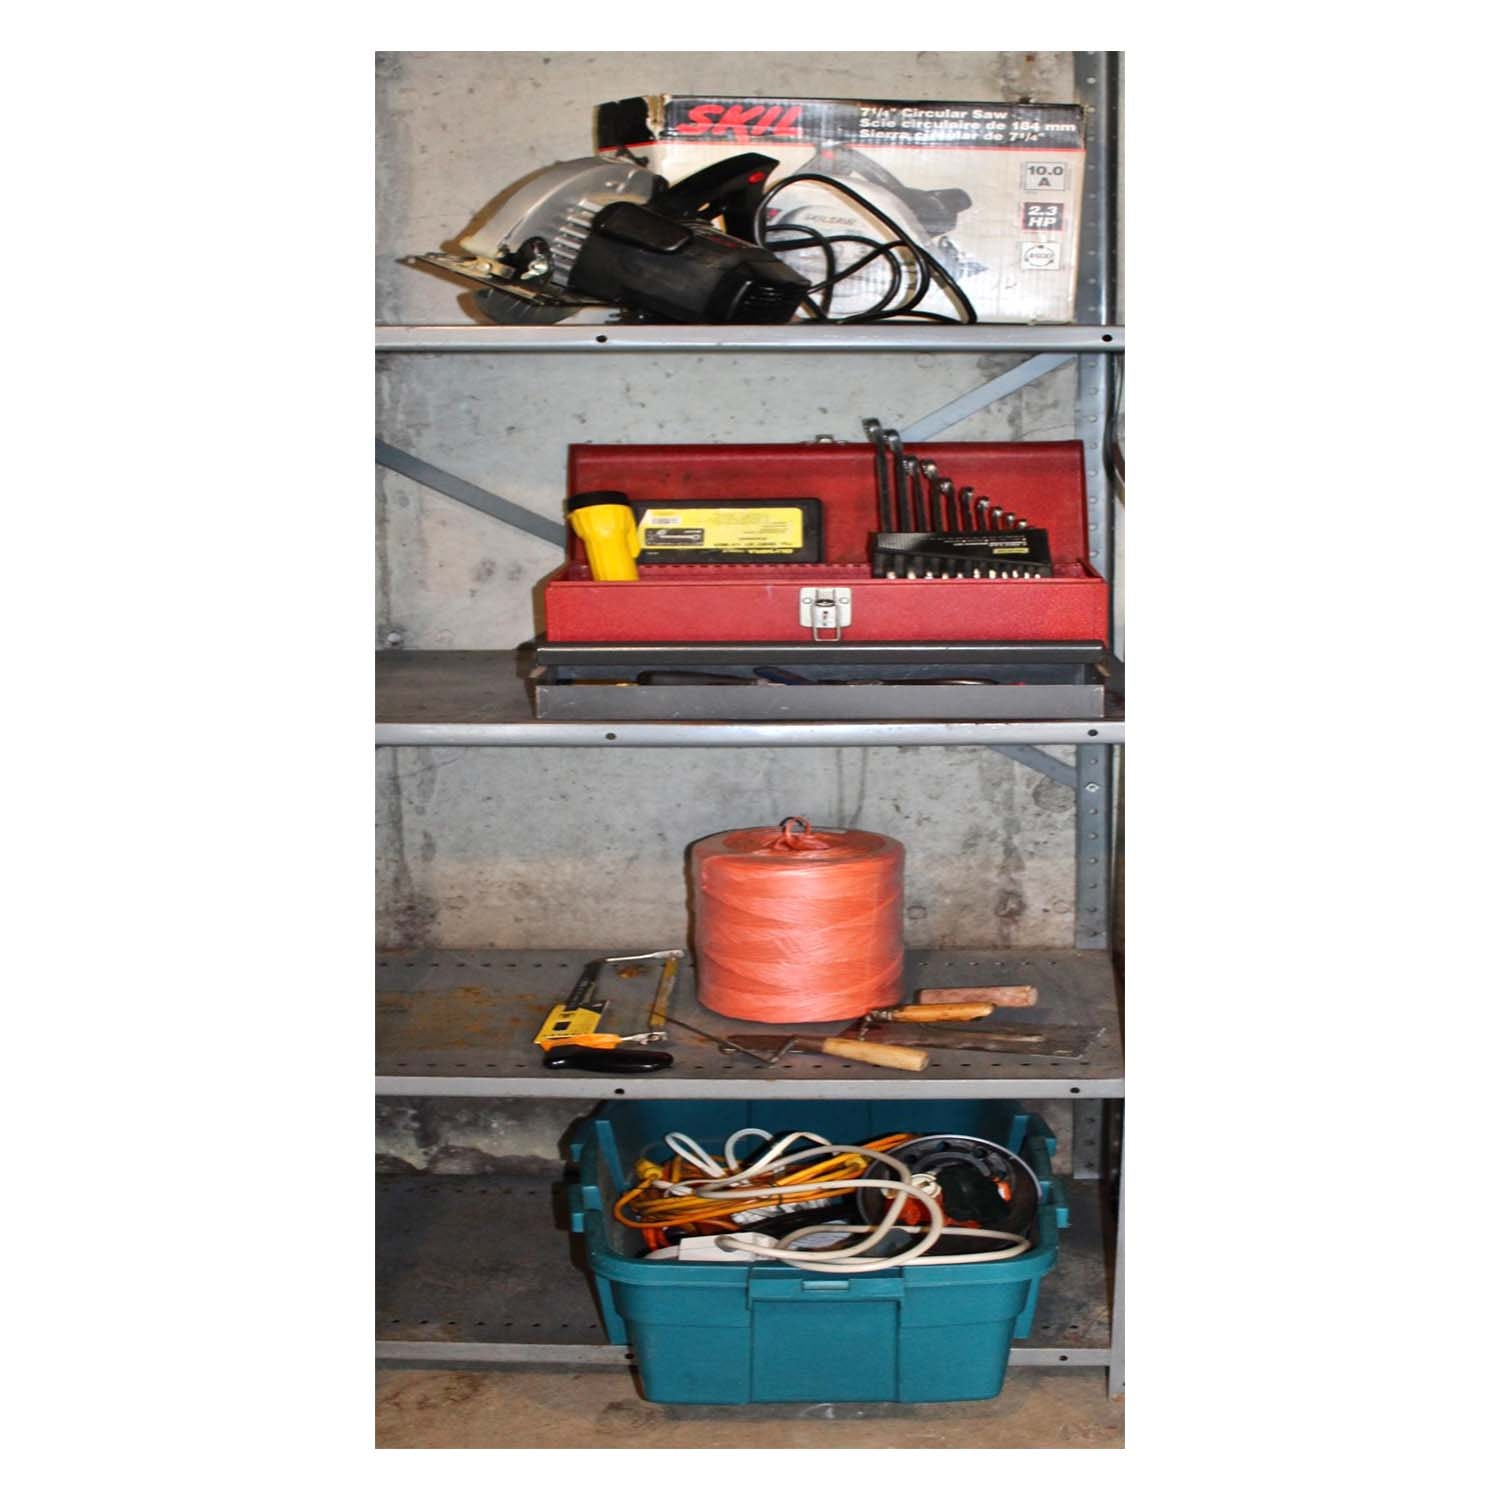 Collection of Hand Tools Including Skil Circular Saw